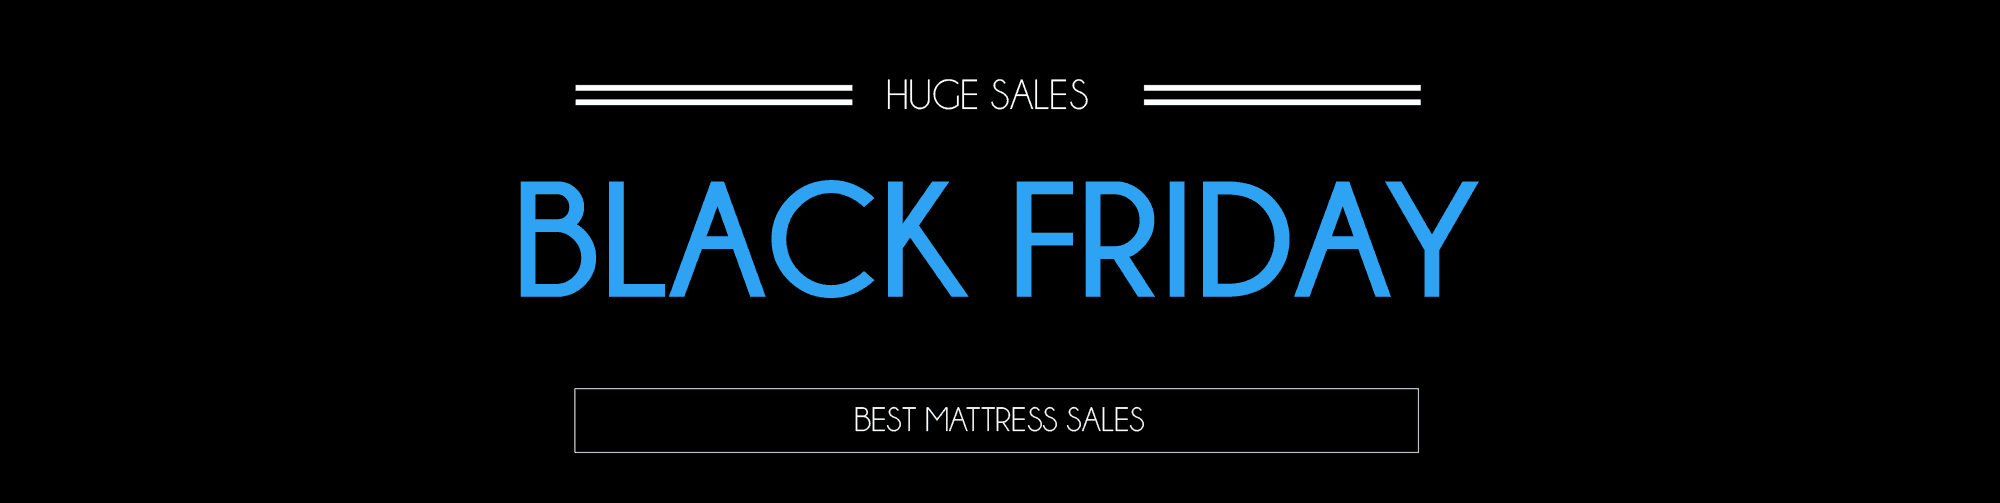 Black Friday Mattress Sales 2015 Sleepopolis